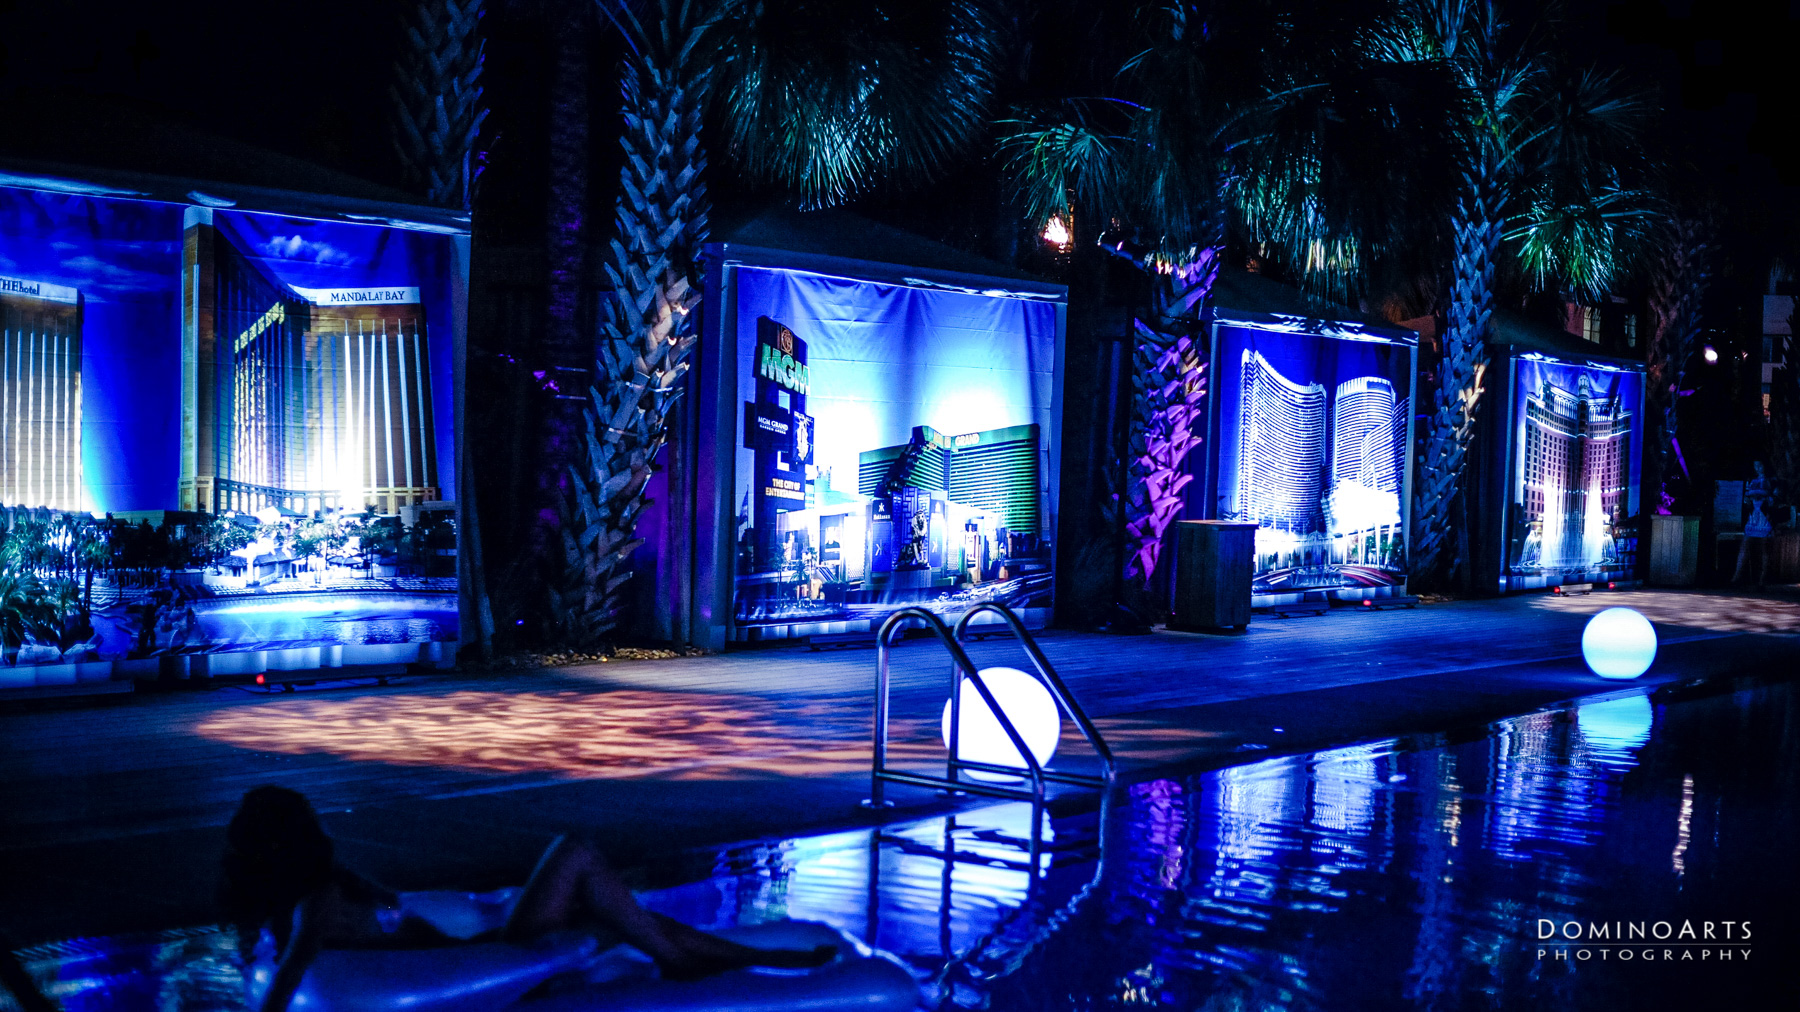 Pool decor for Corporate Event at SLS South Beach, Miami